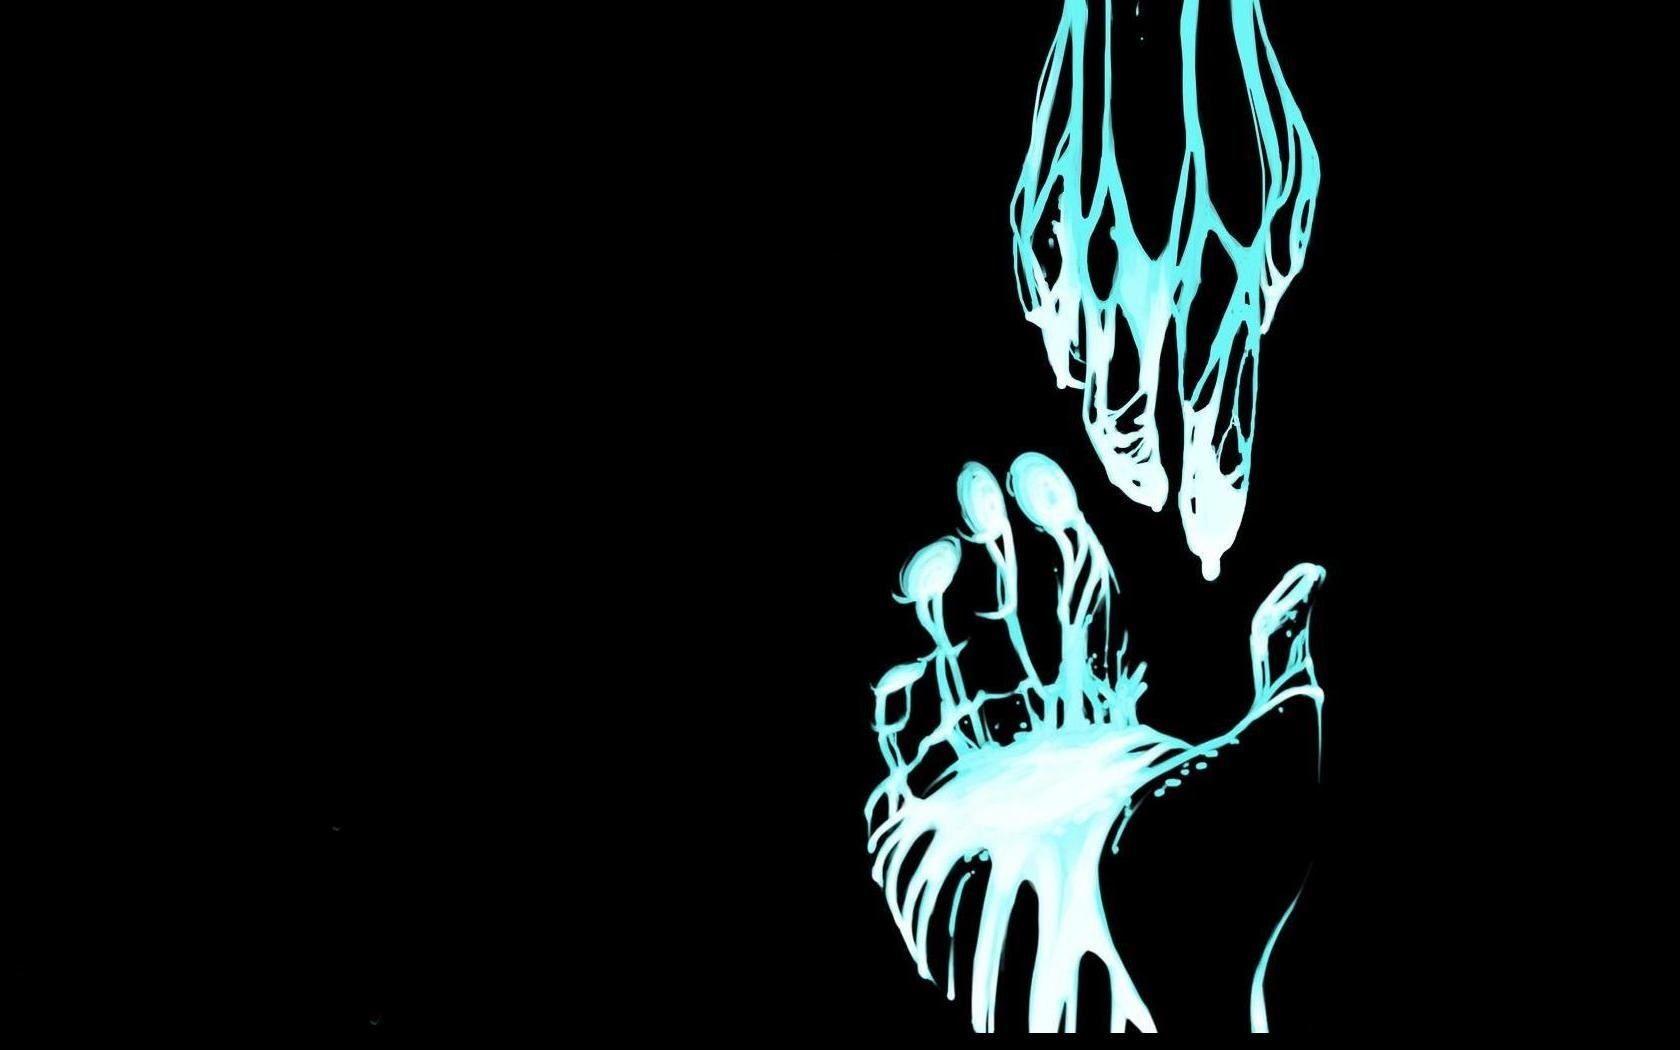 blue hands HD Wallpaper